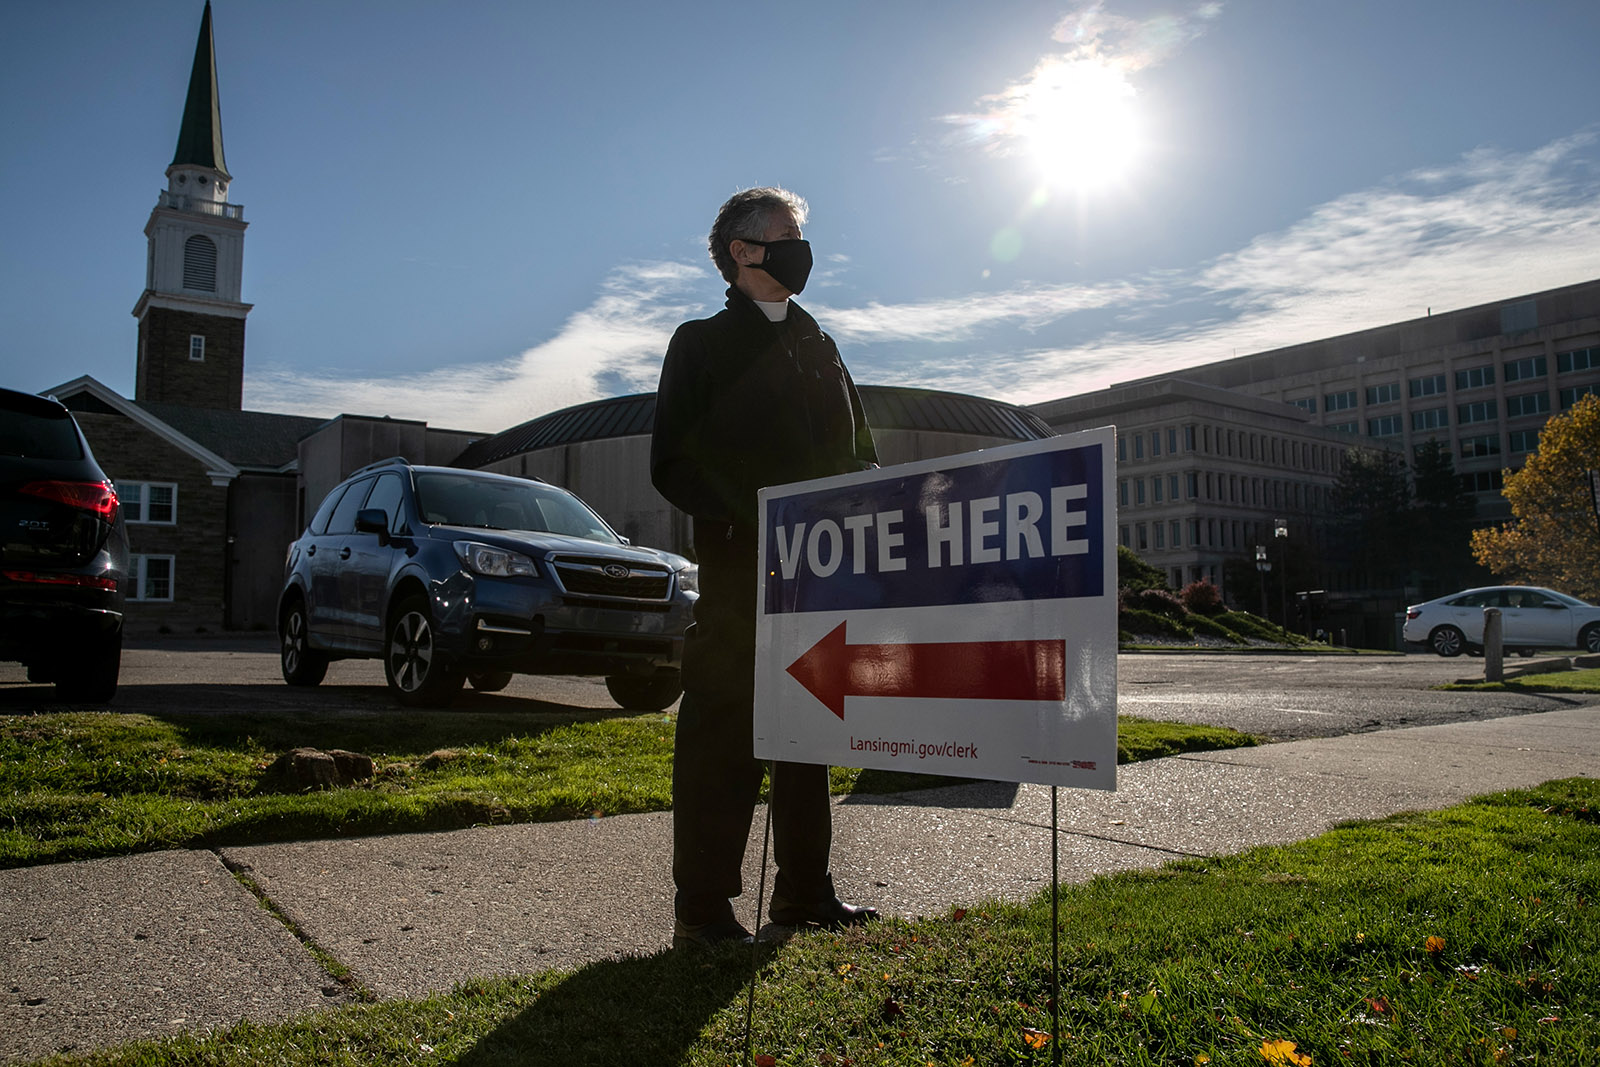 Poll observer Sue Carter stands near a polling place while watching for potential voter intimidation on Tuesday in Lansing, Michigan.